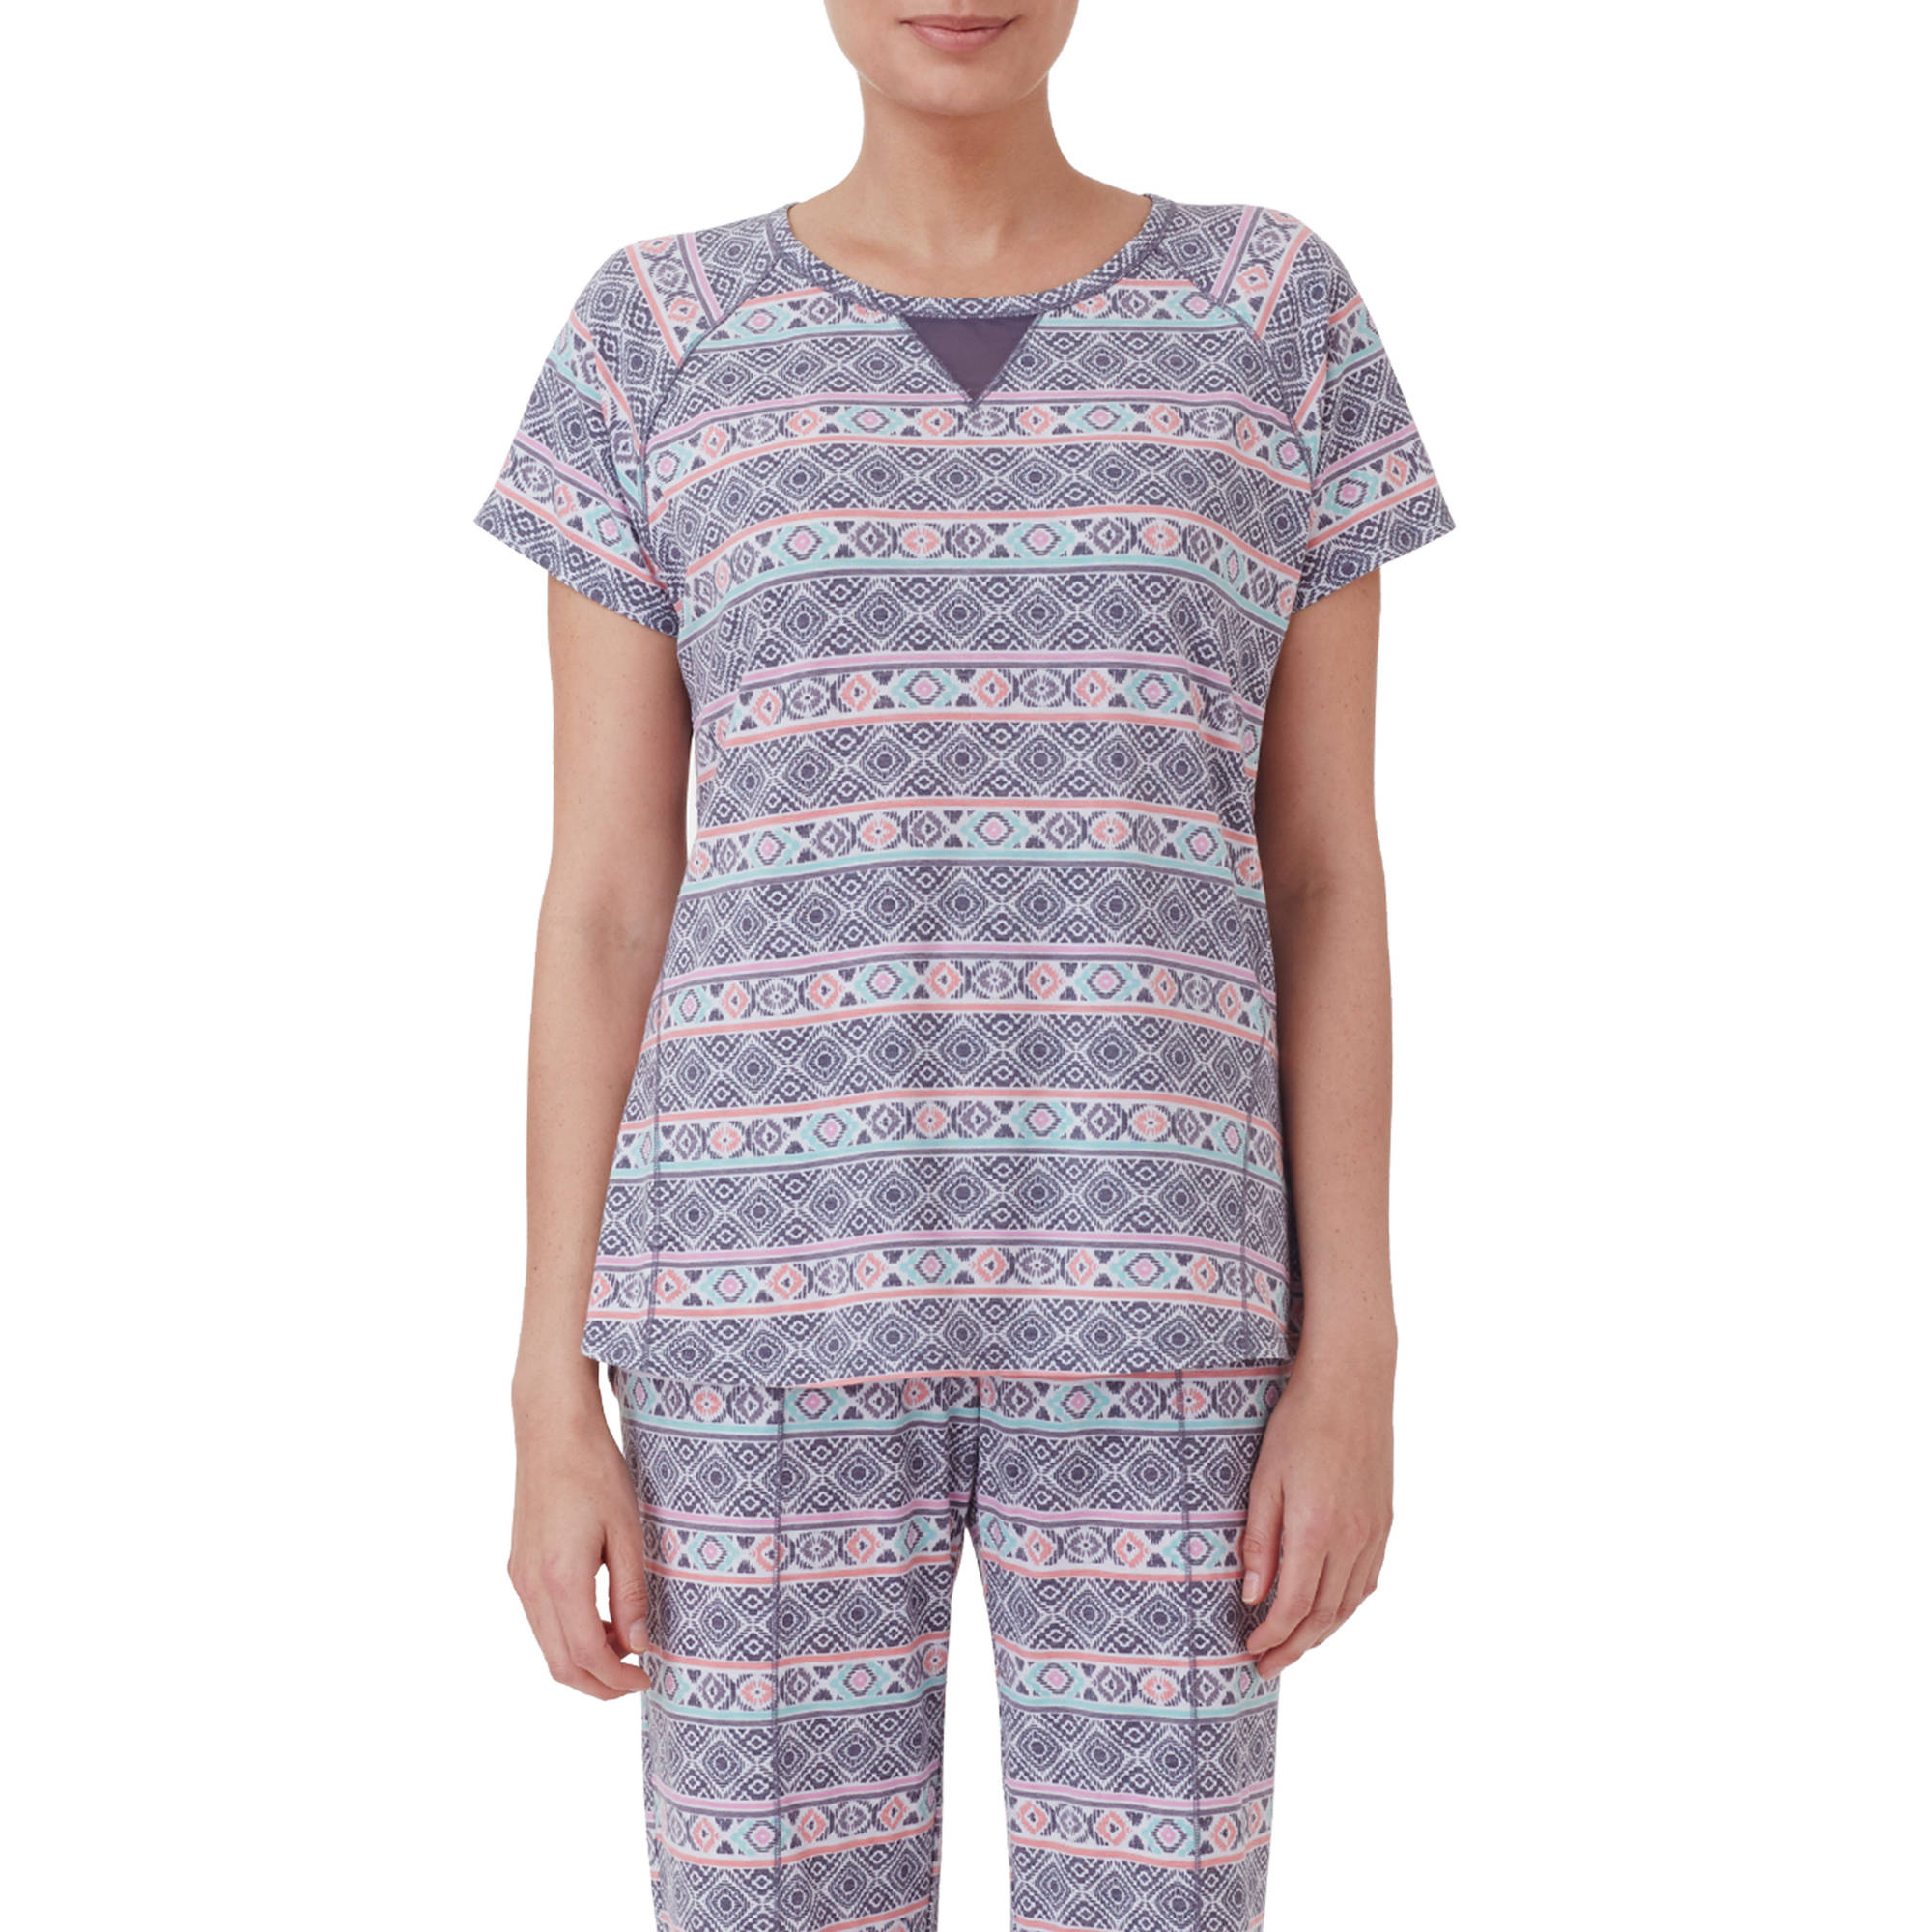 ClimateRight by Cuddl Duds Women's Short Sleeve Sleep Tee with Mesh